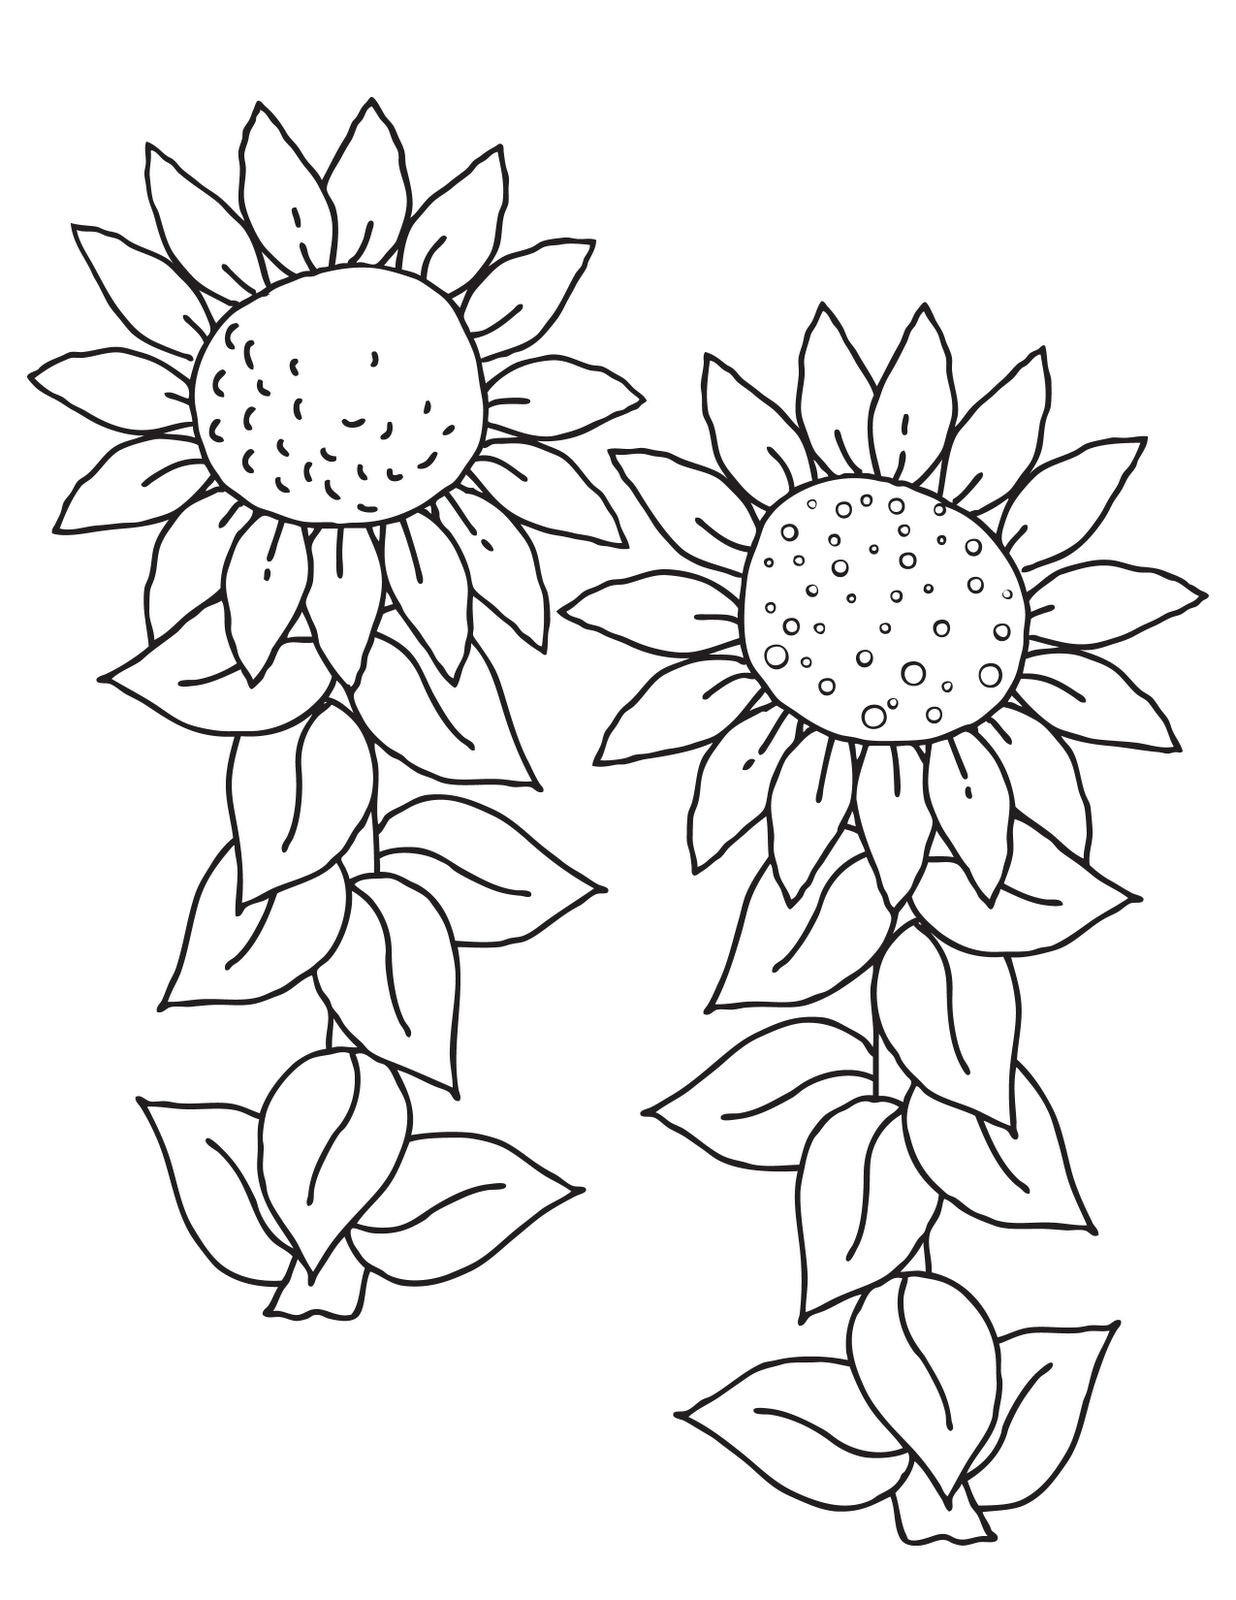 Daisies, Digis and Doodads: Free Digi Stamps | Digital Design Team ...